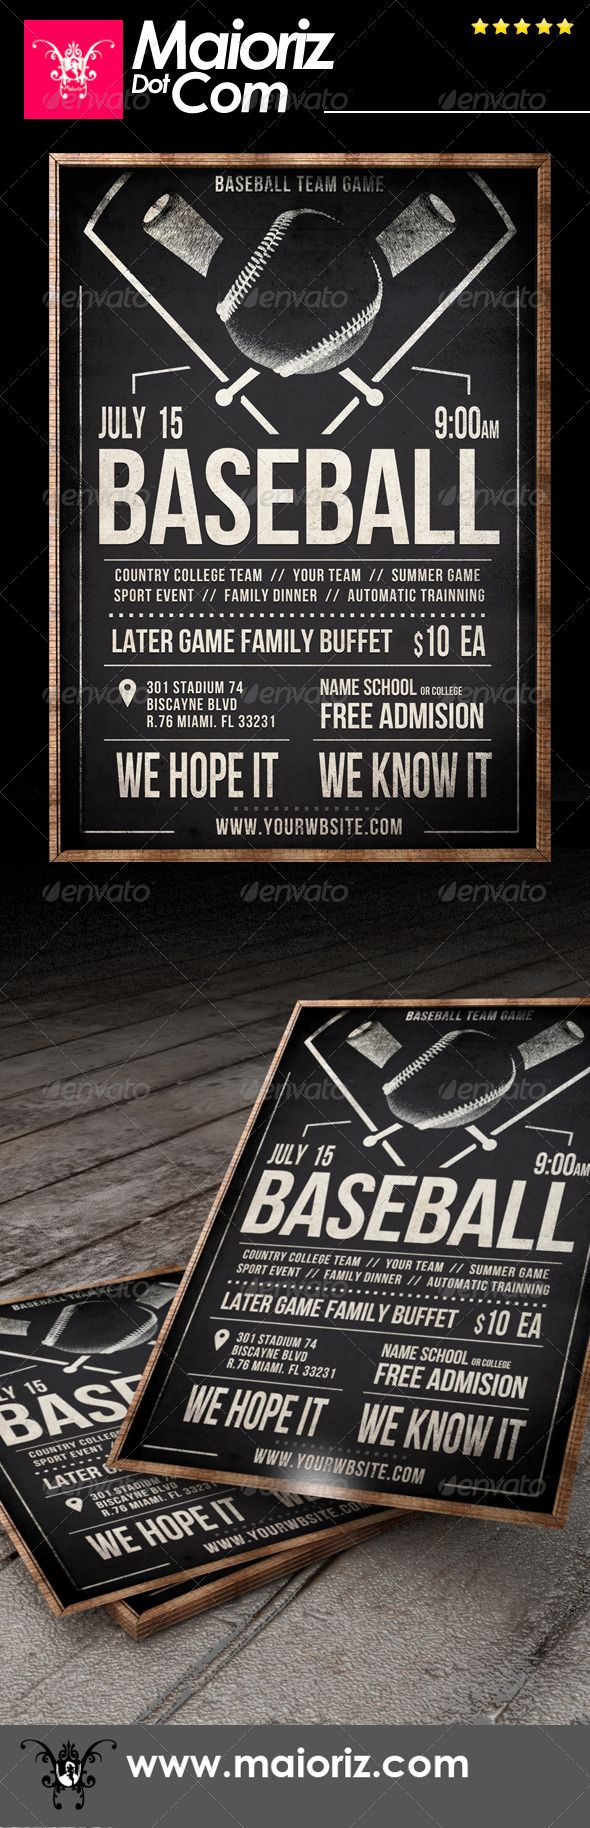 17 Best images about Product Flyers on Pinterest | Baseball party ...